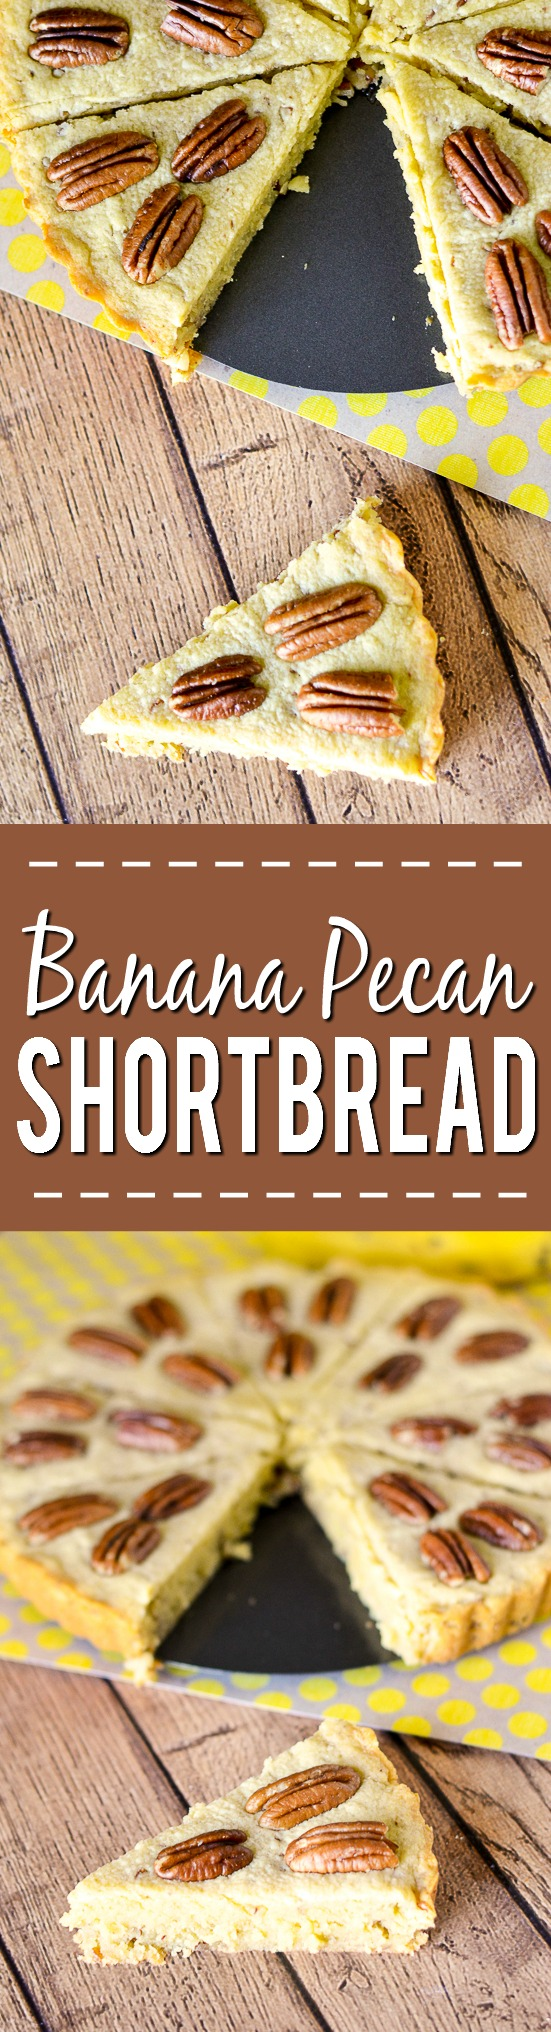 Banana Pecan Shortbread Recipe - Buttery and sweet, this Banana Pecan Shortbread recipe is sure to solve your comfort food craving with ripe, sweet bananas, buttery shortbread, and crunchy pecans. Easy dessert recipe